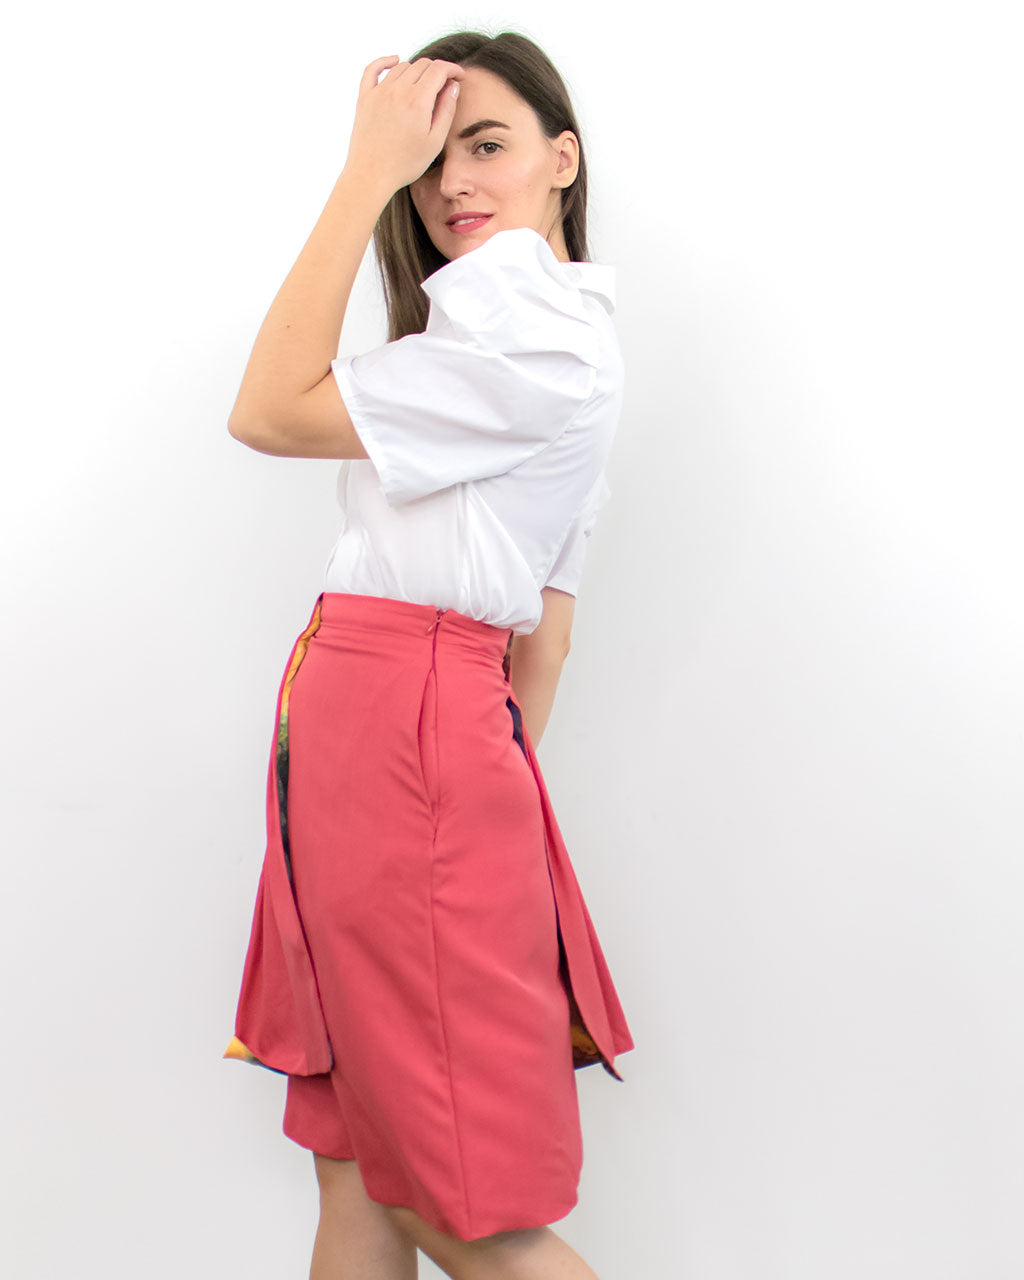 Luxury designer high waisted red double layer flowy flare straight skirt ADKN ethically made in UK from sustainable materials